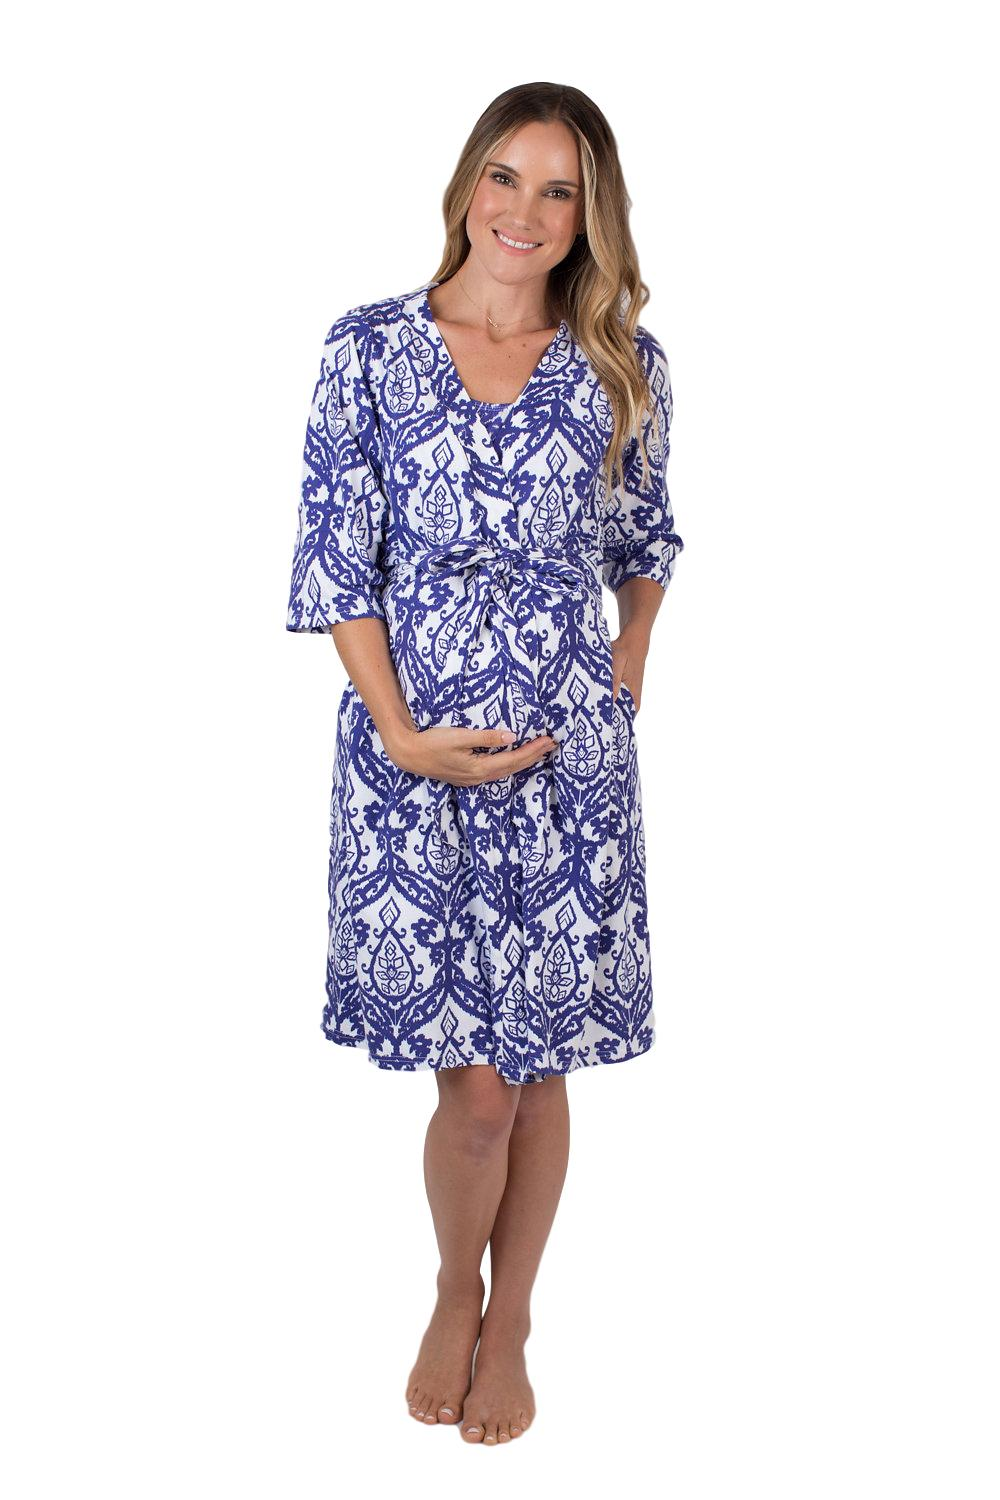 Brie Delivery Robe with Matching Baby Receiving Gown & Hat